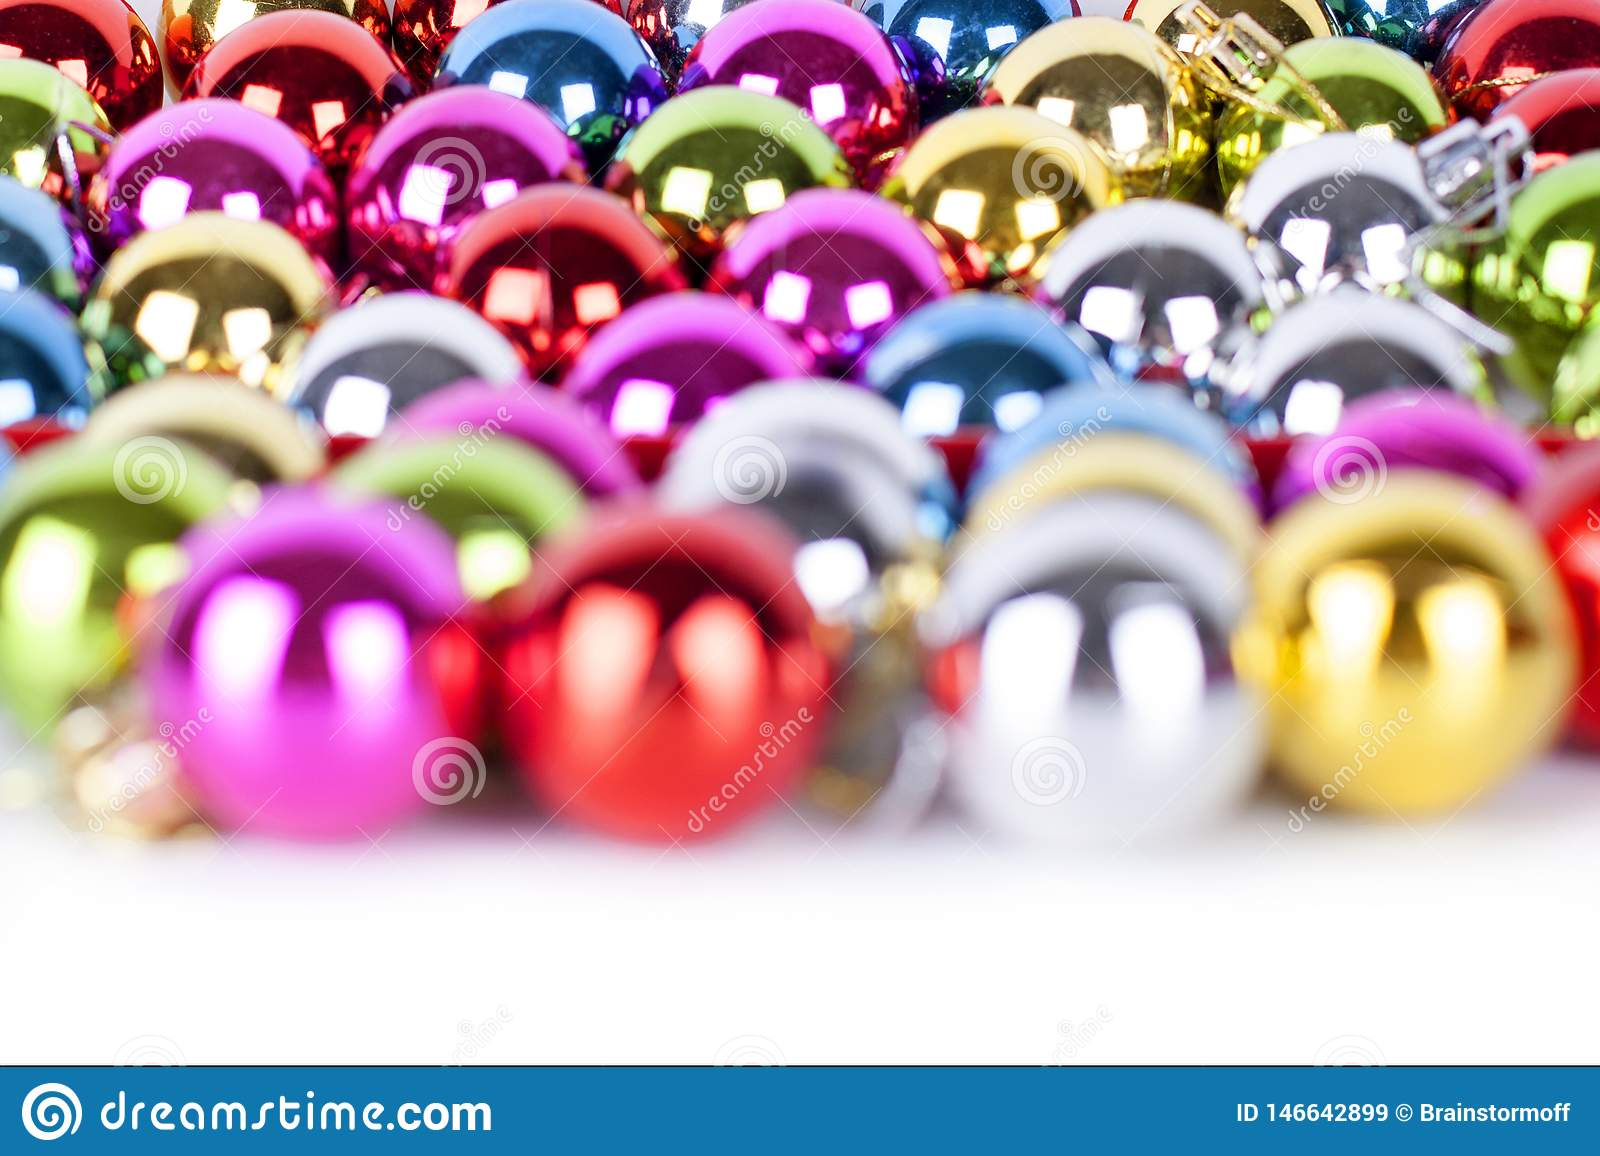 Christmas and New Year pattern, ornament of bright multi-colored glass decorative balls, shining lights and sparkles, bokeh